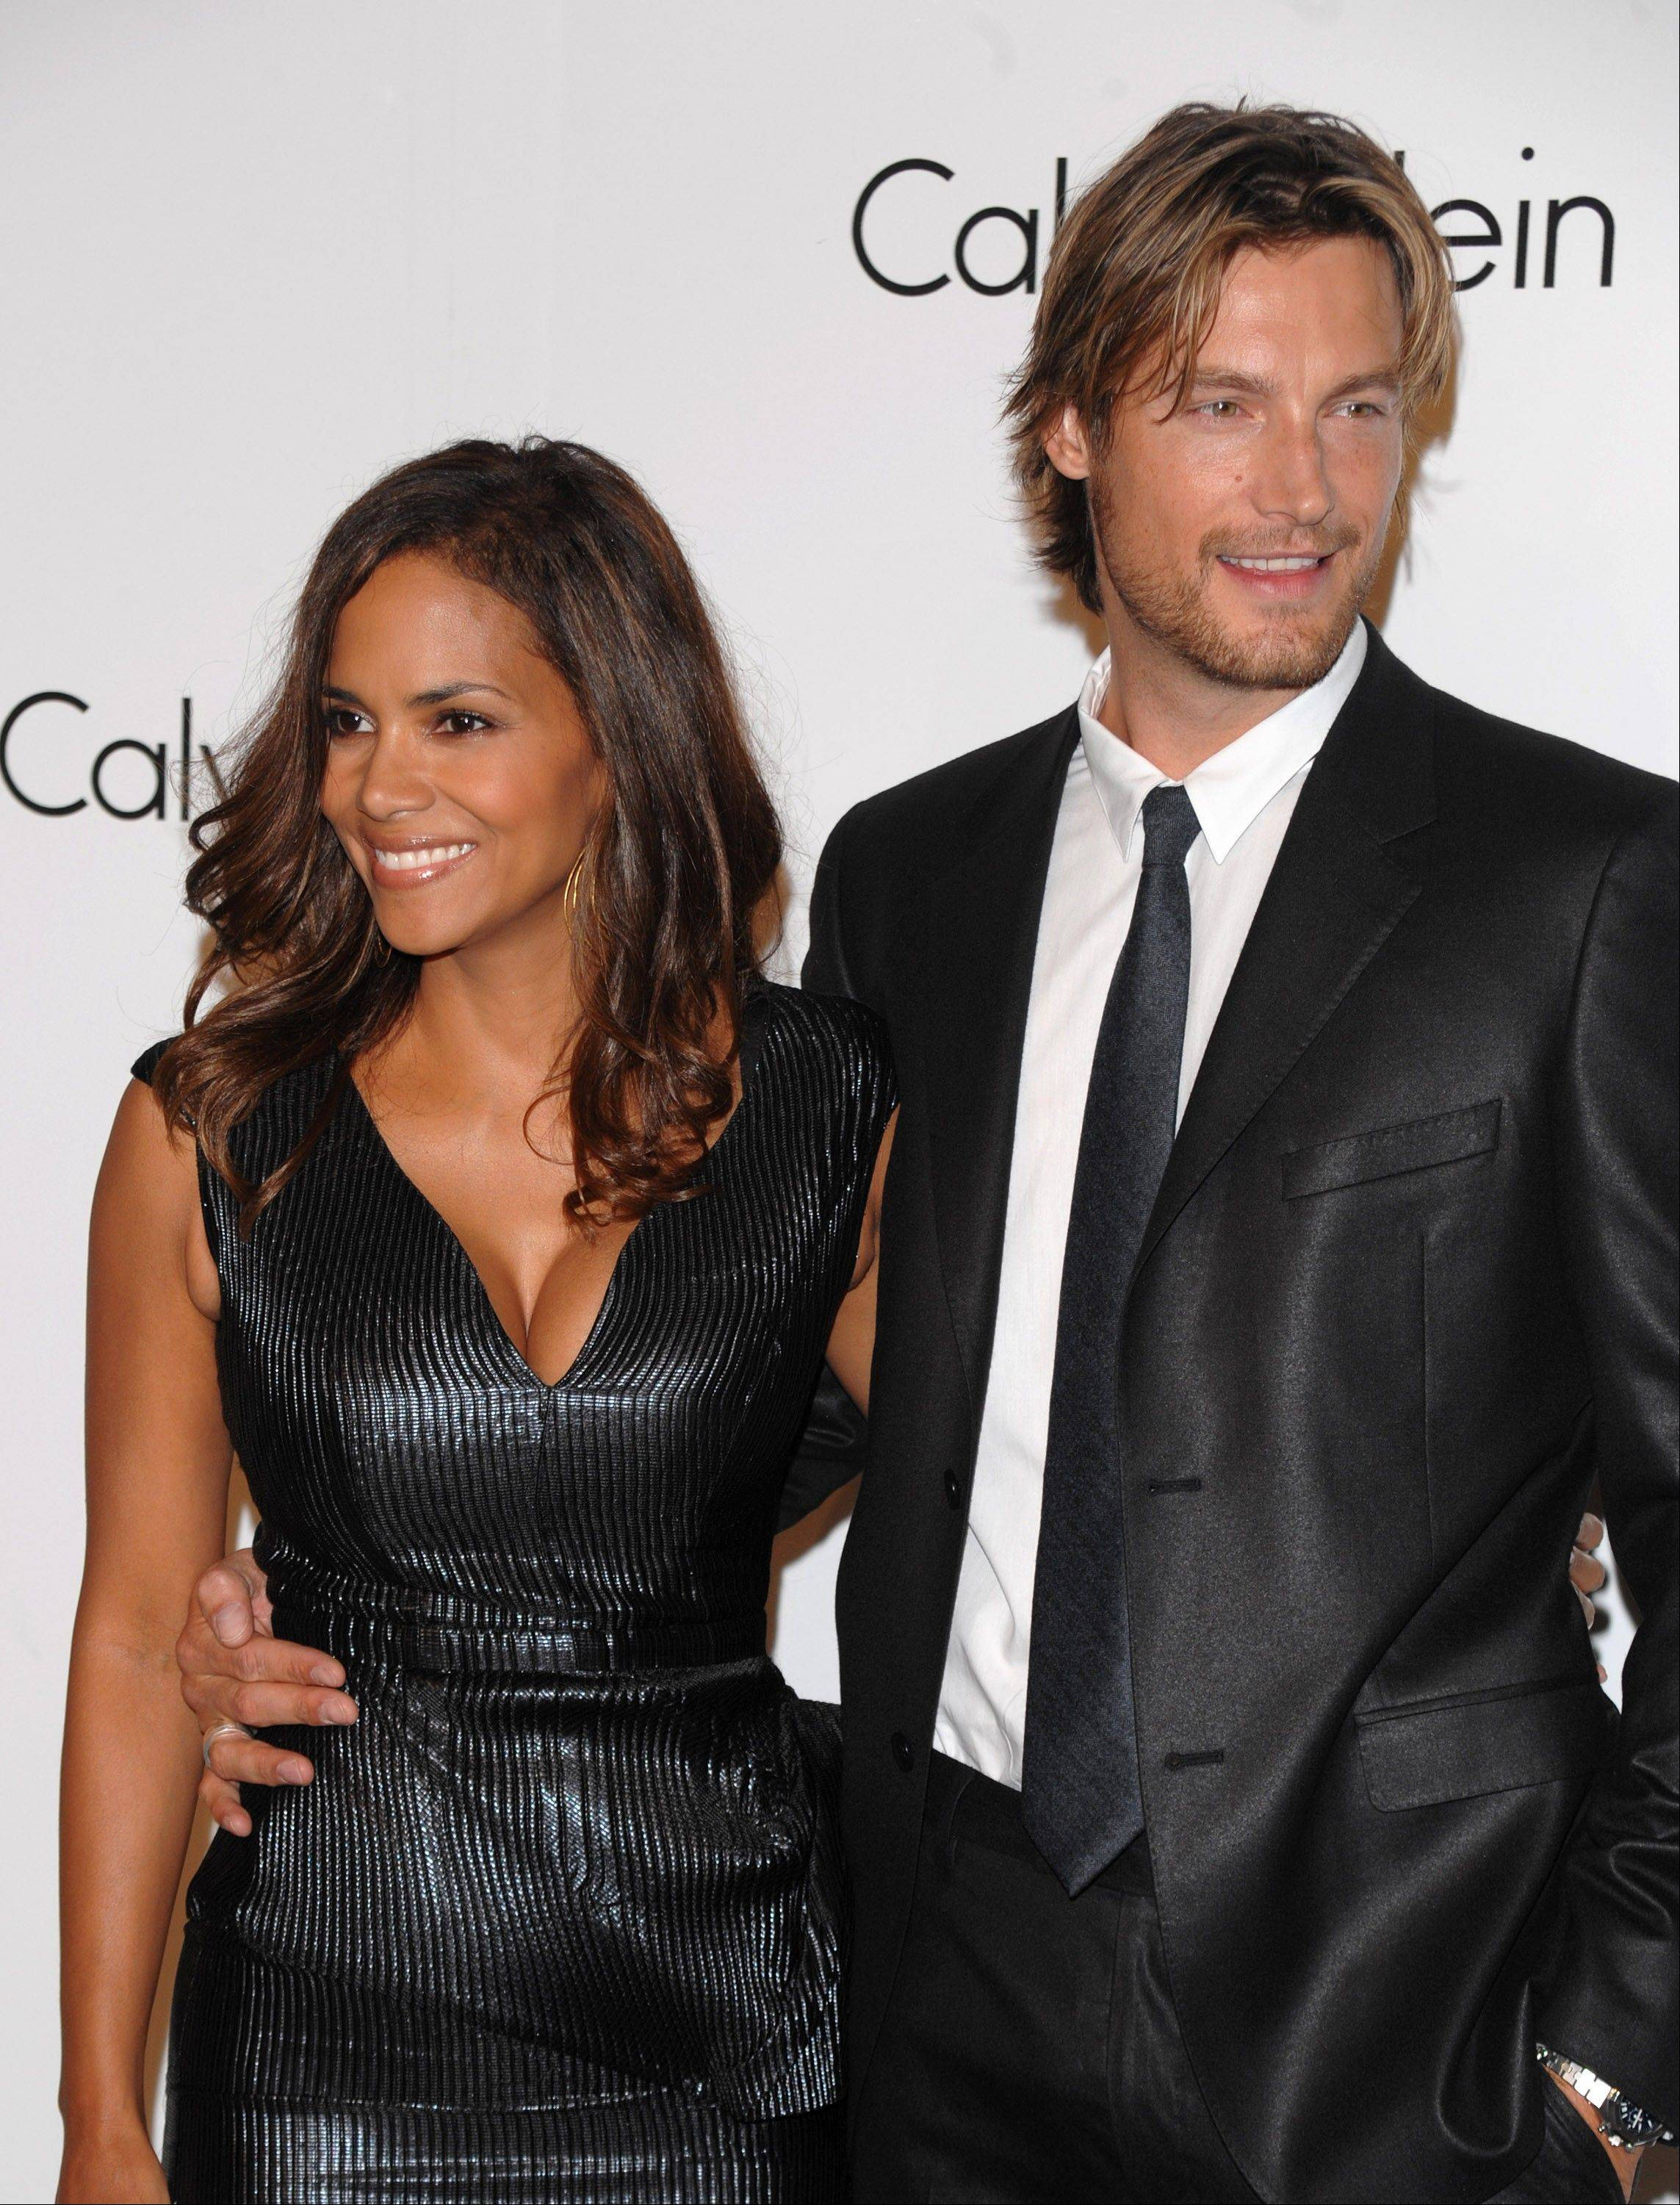 Halle Berry's ex-boyfriend Gabriel Aubry, right, was arrested for investigation of battery after he and the Oscar-winning actress' current boyfriend got into a fight at her California home, police said Thursday.